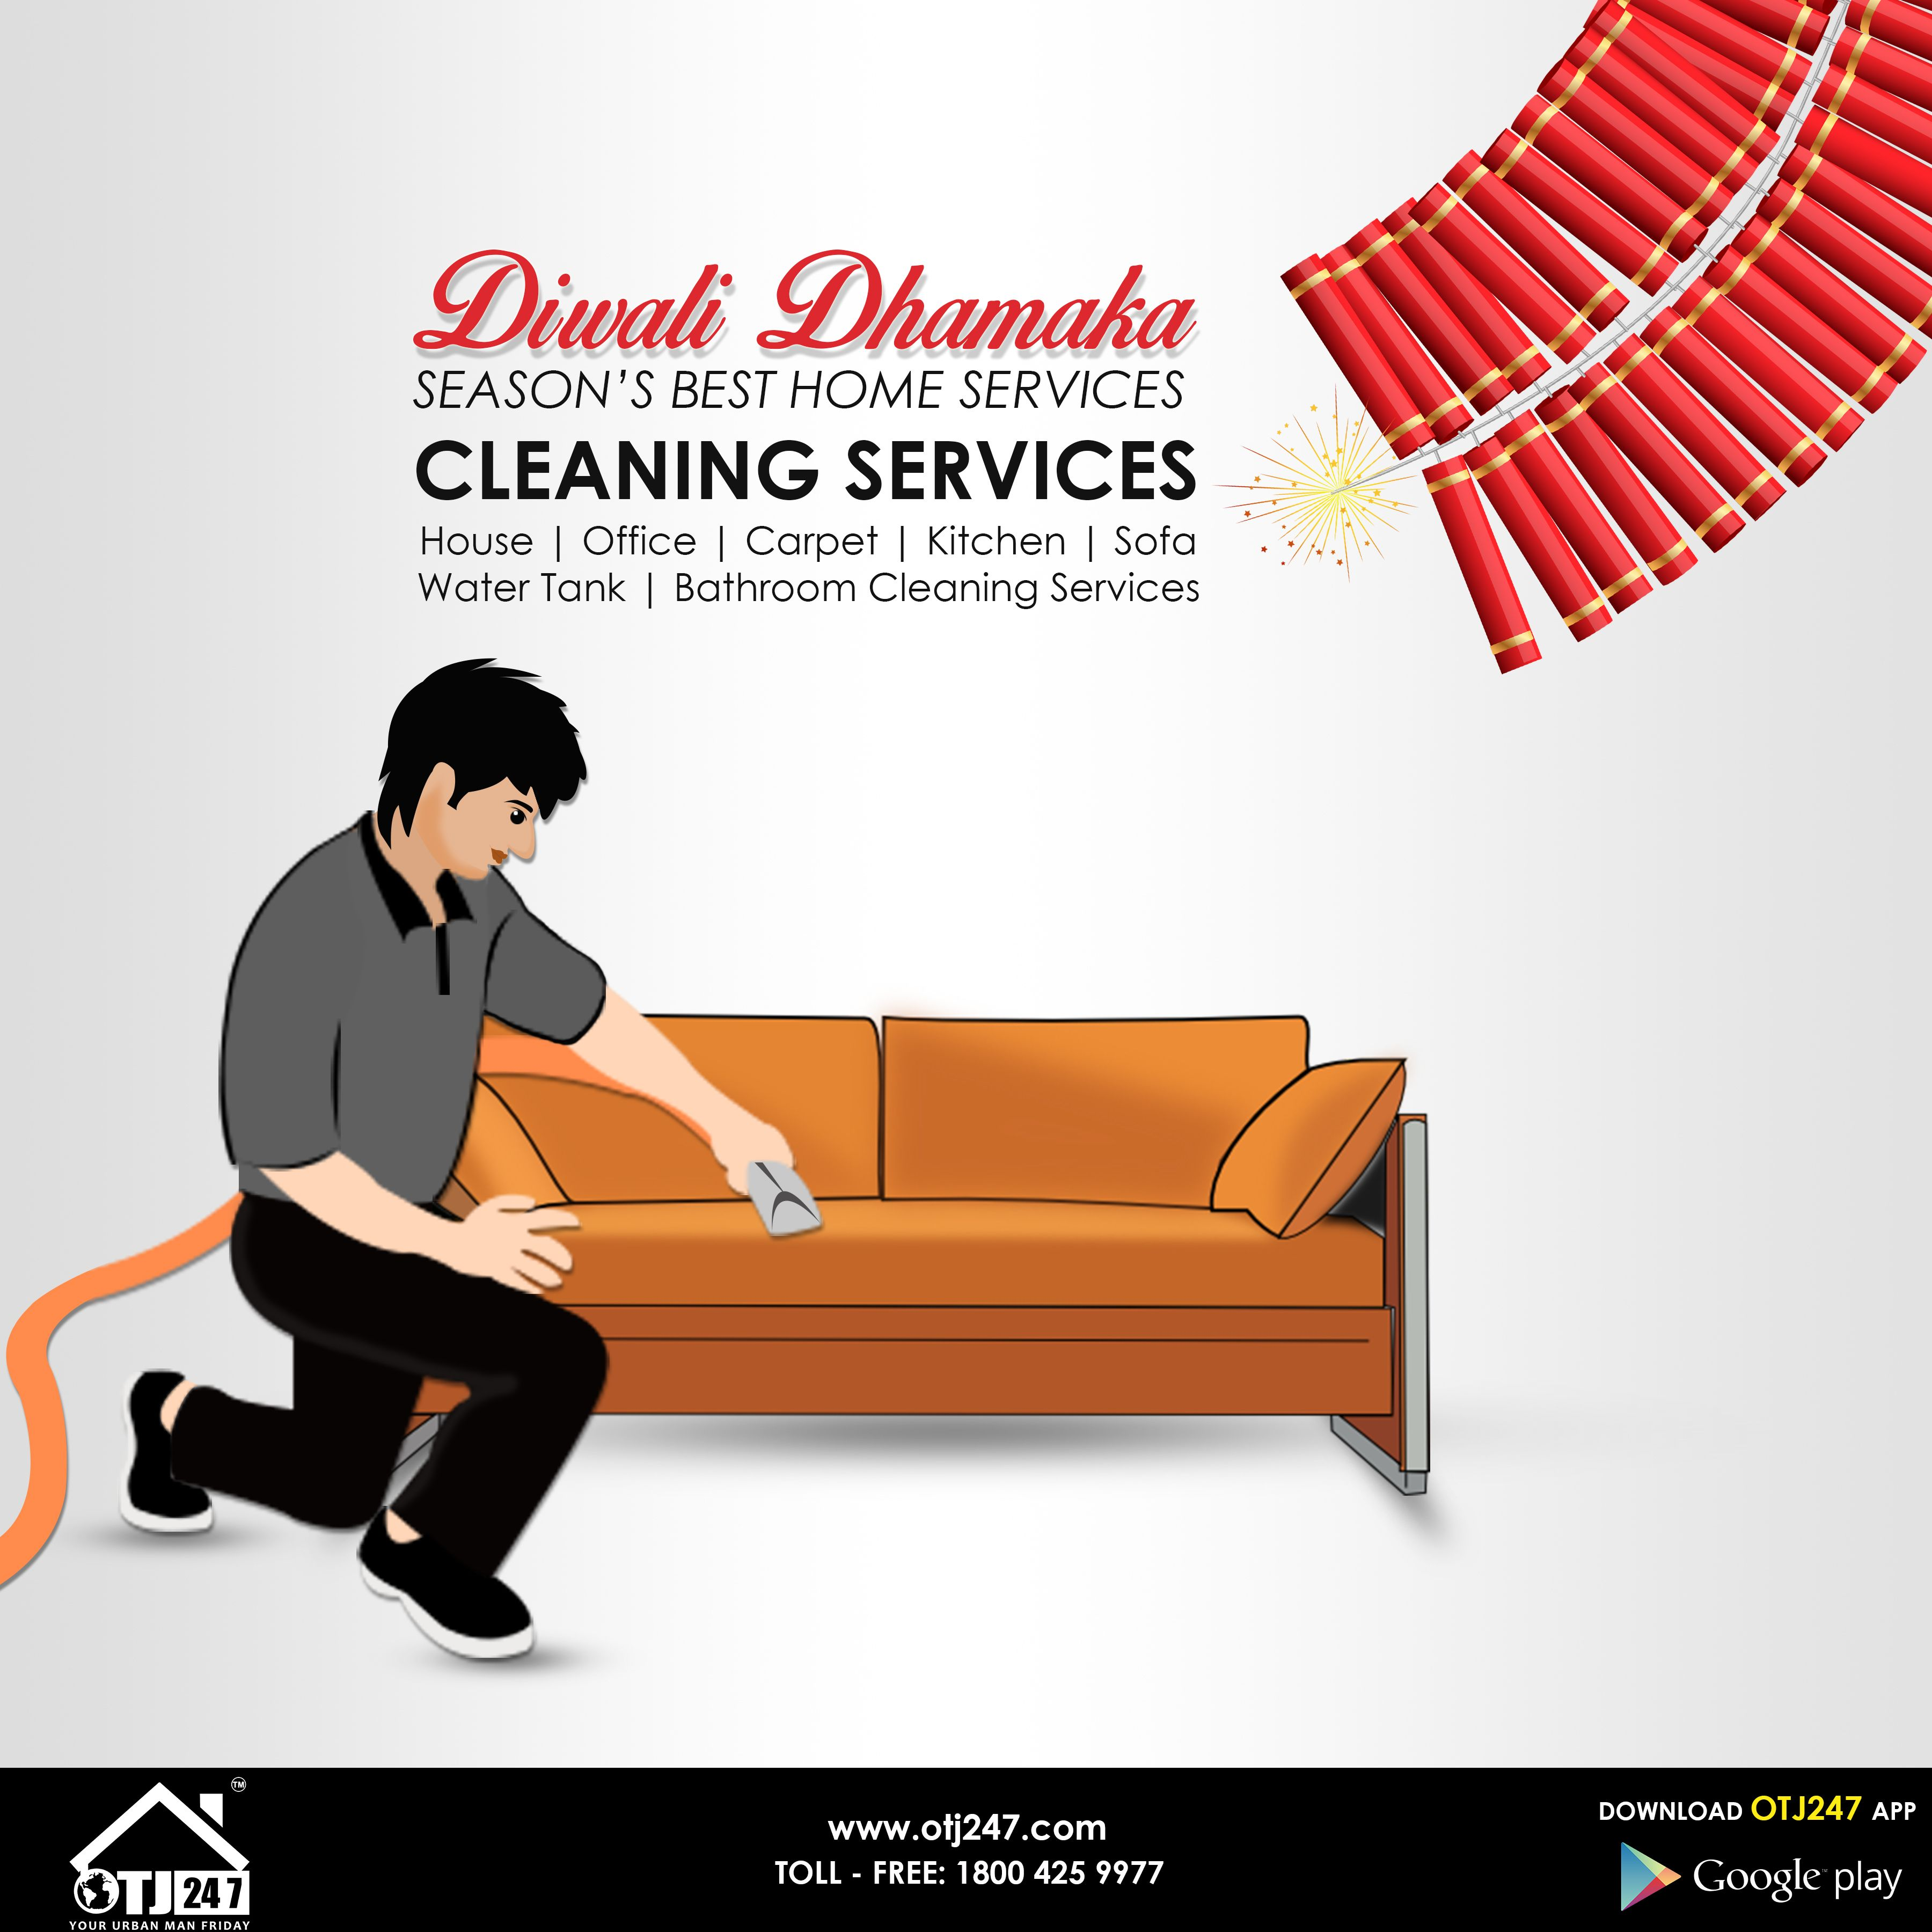 Bathroom cleaning services in bangalore - Diwali Dhamaka Offers Season S Best Home Services Cleaning Services In Bangalore Book